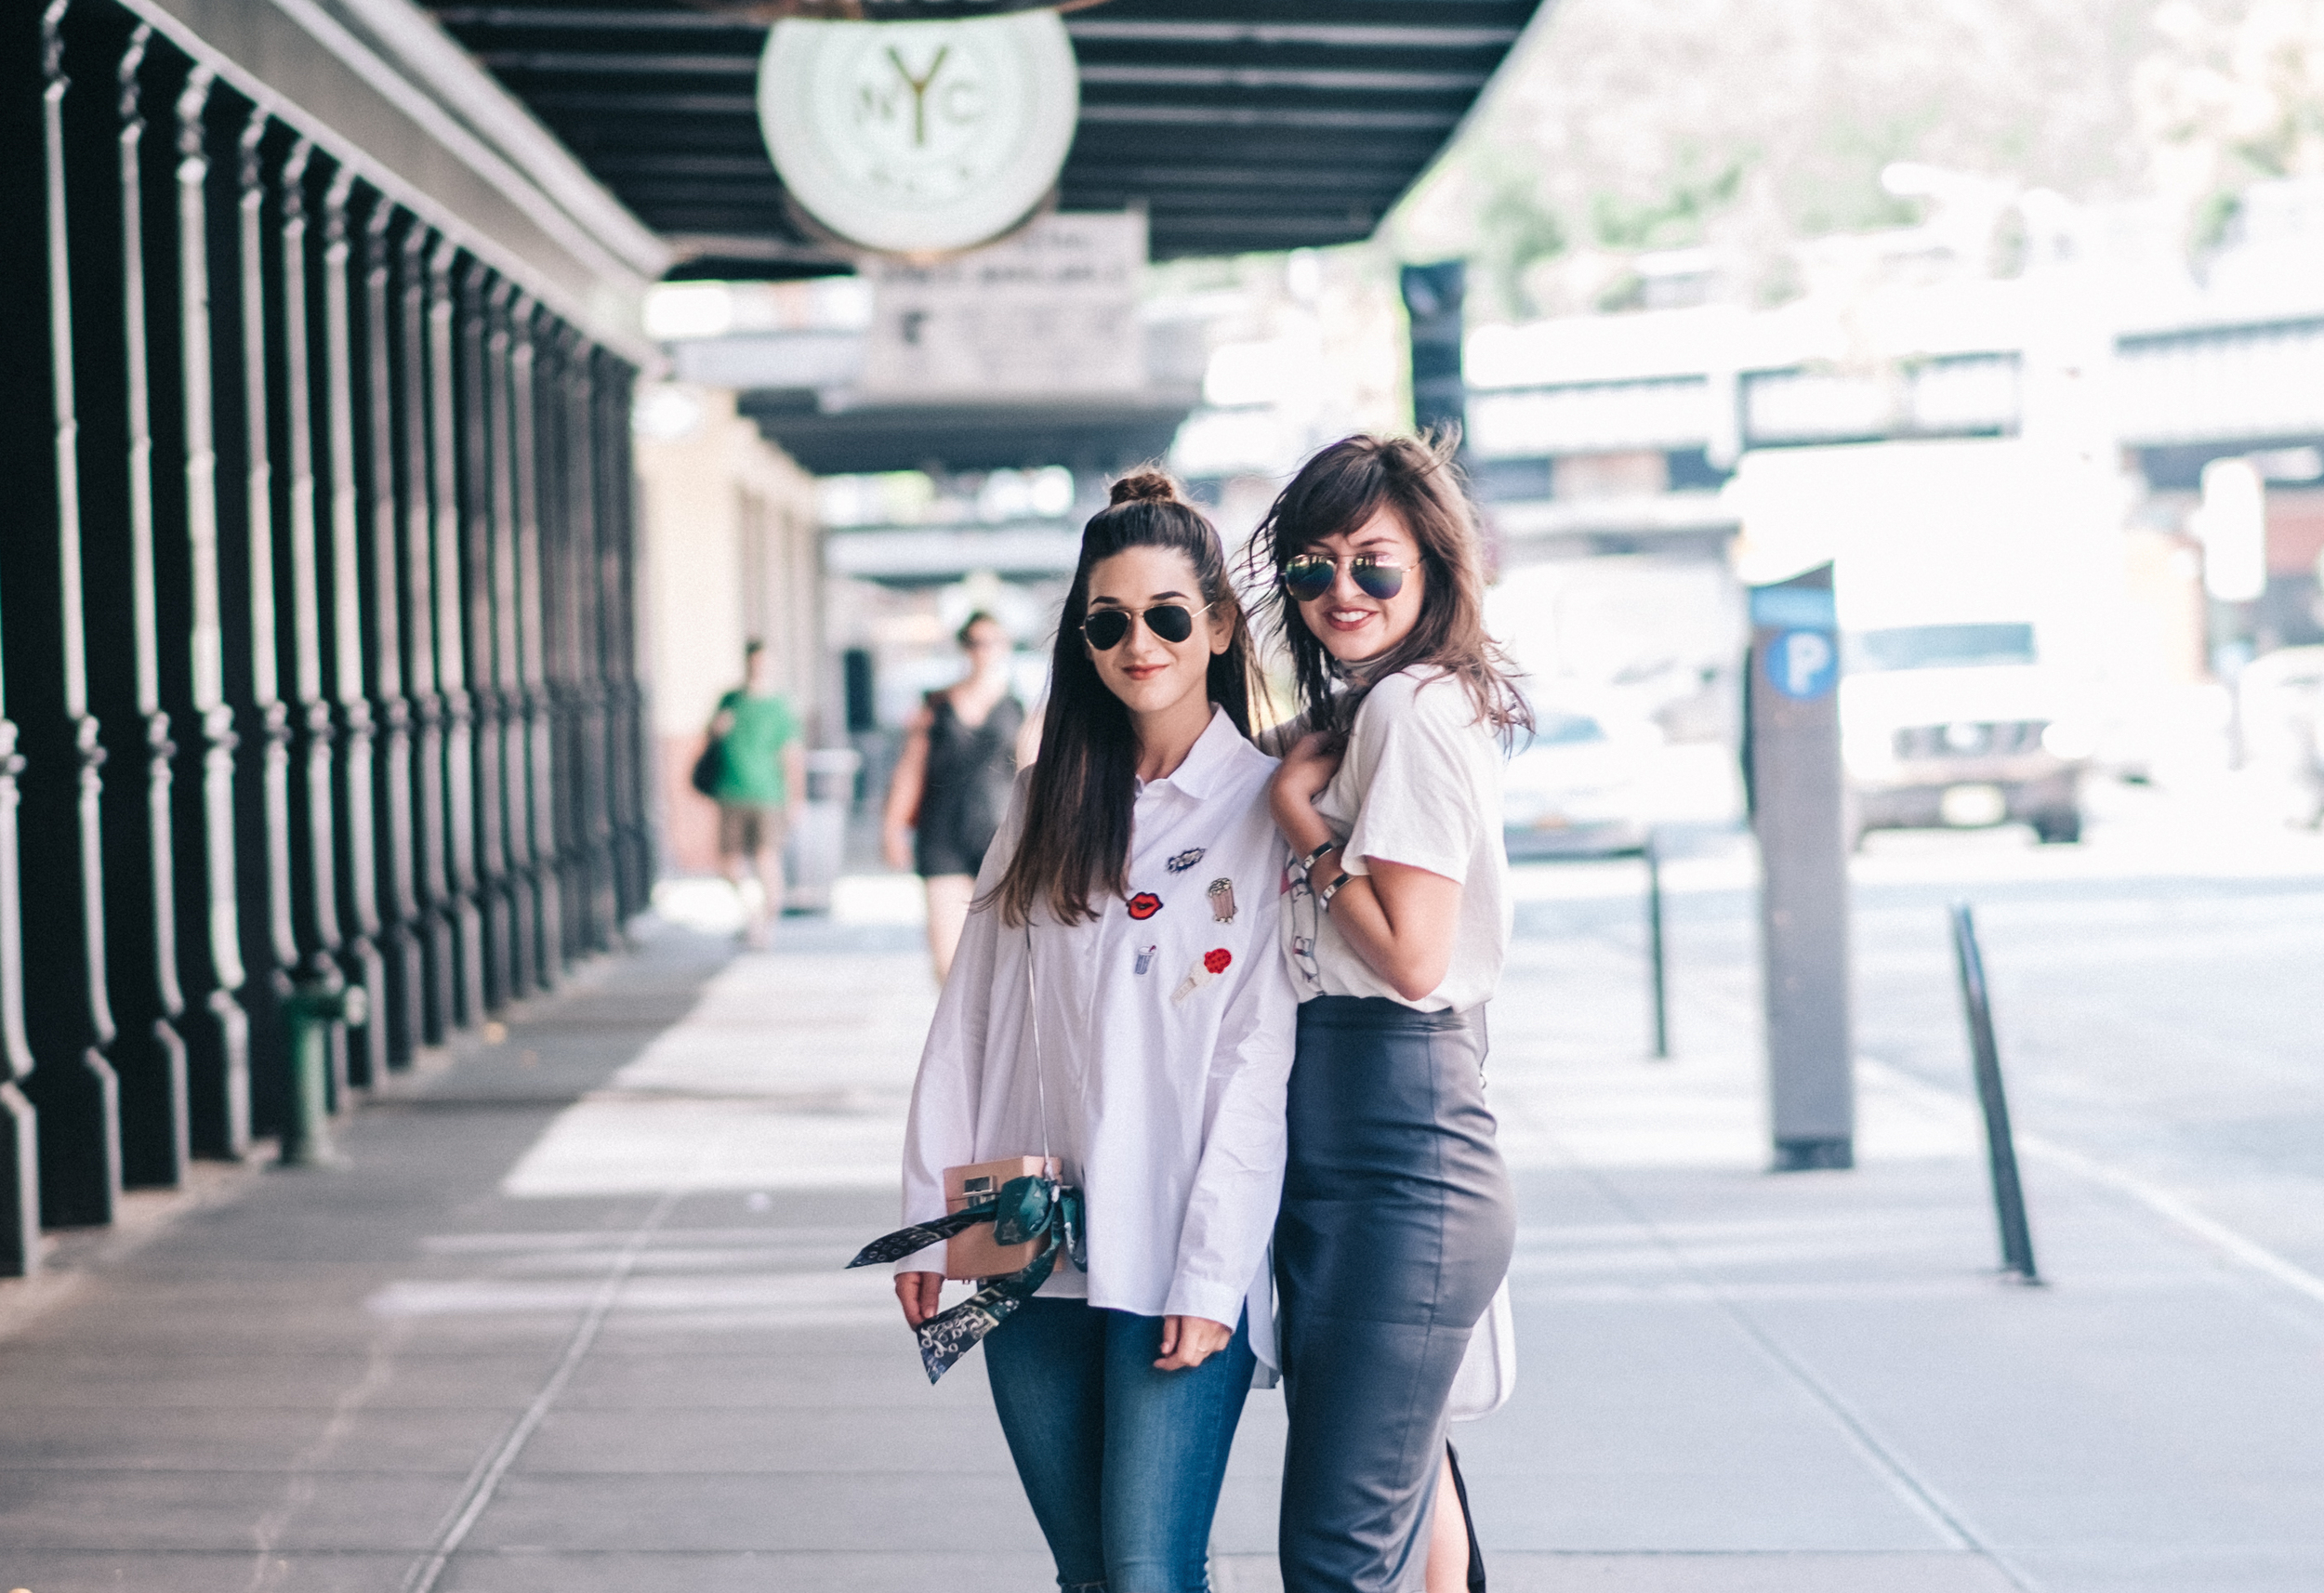 Photoshoot Collab With Lexicon Of Style How To Make Blogger Friends Louboutins & Love Fashion Blog Esther Santer NYC Street Style Blogger Outfit OOTD Trendy Oversized White Dress Shirt Patches Ripped Denim Jeans Scarf Wedges Heels Zara Sunglasses Bag.jpg